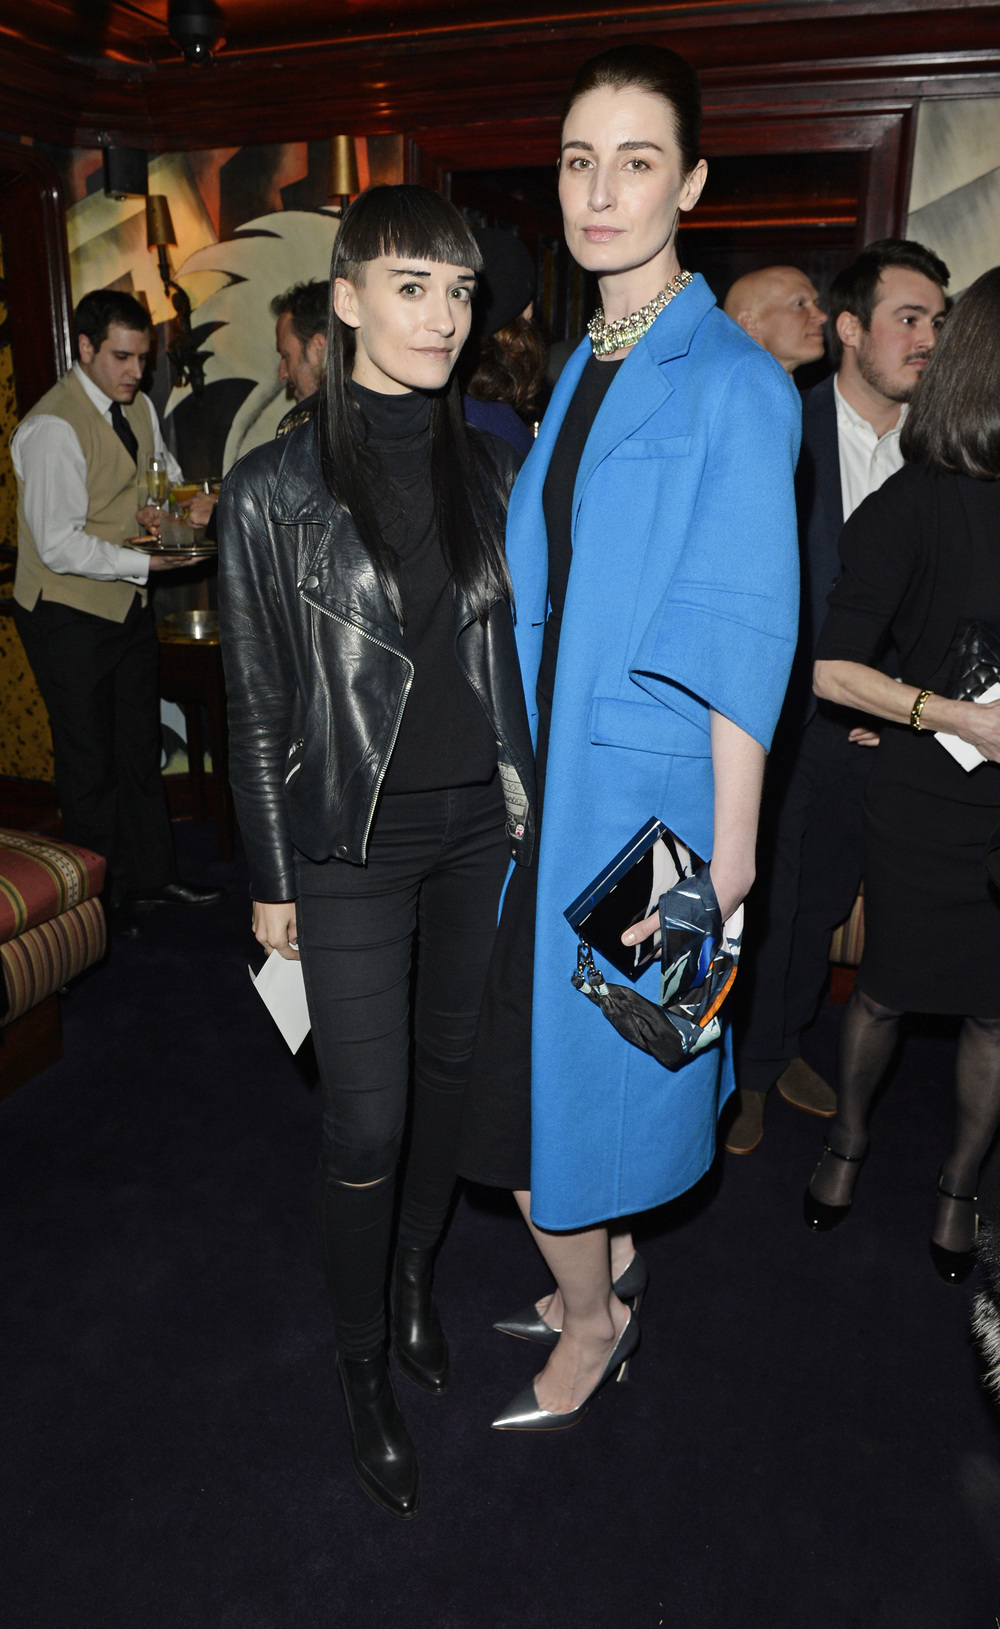 Hannah Marshall & Erin O'Connor.JPG